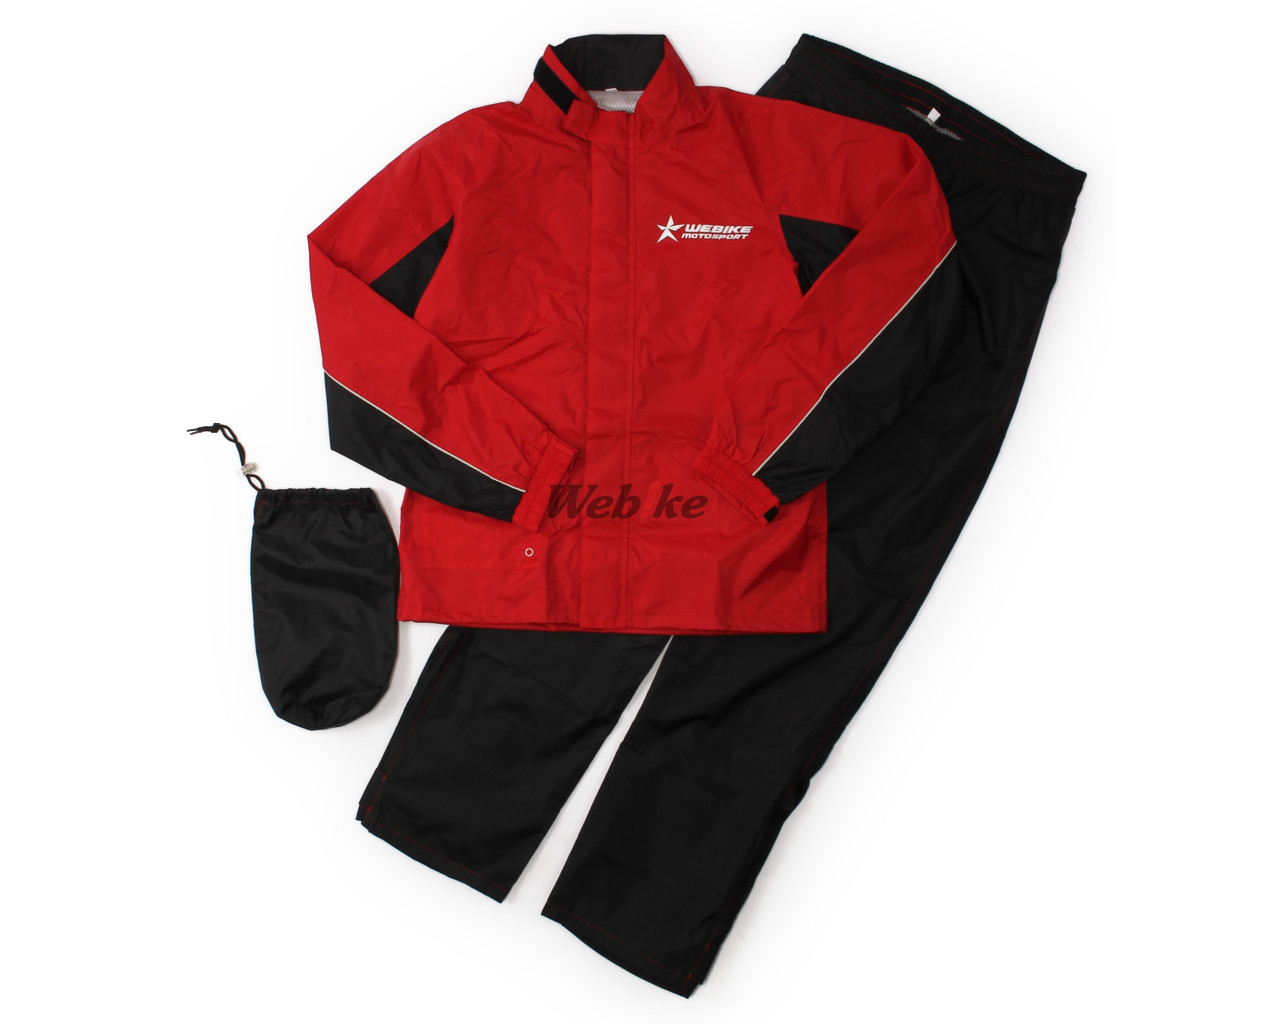 Webike Motosports Raincoat for motorcycle riders